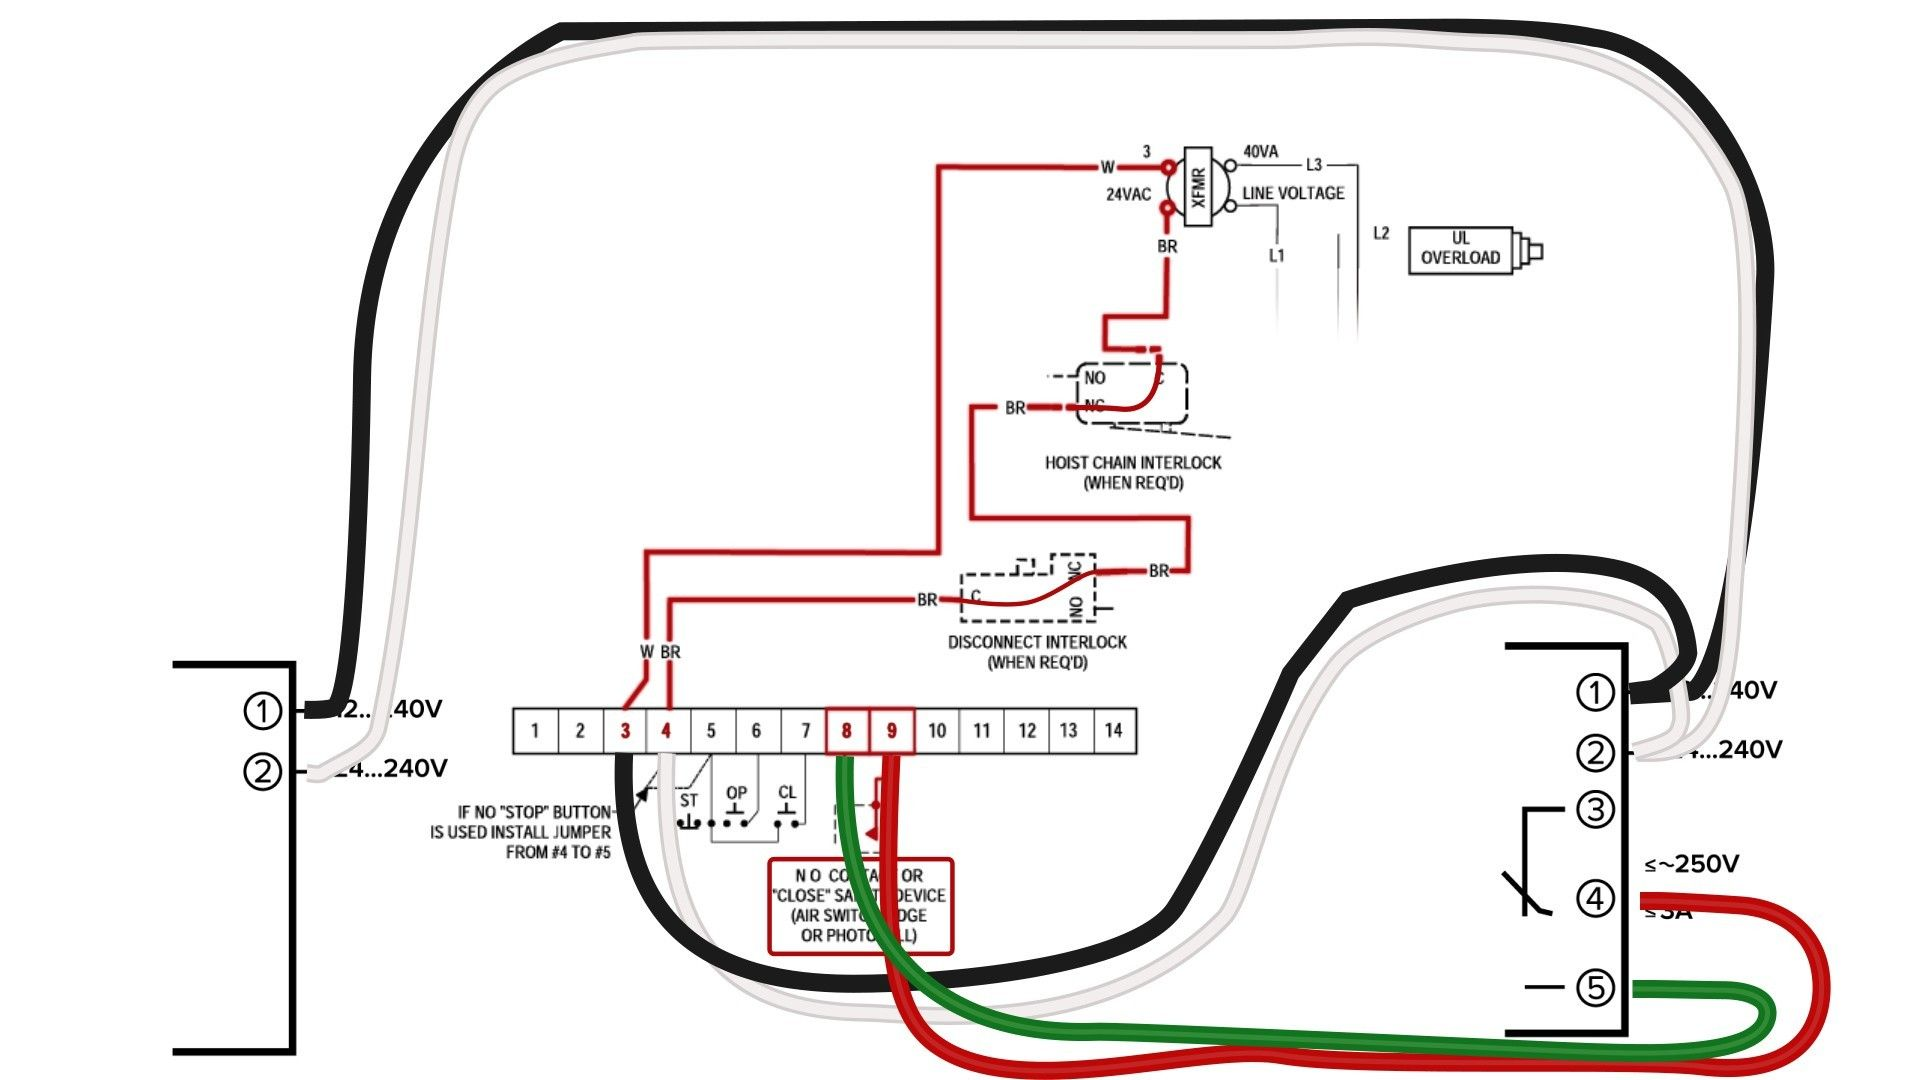 Unique Wiring Diagram Garage Door Sensor Diagram Diagramsample Diagramtemplate Wiring Garage Doors Garage Door Opener Troubleshooting Electric Garage Doors